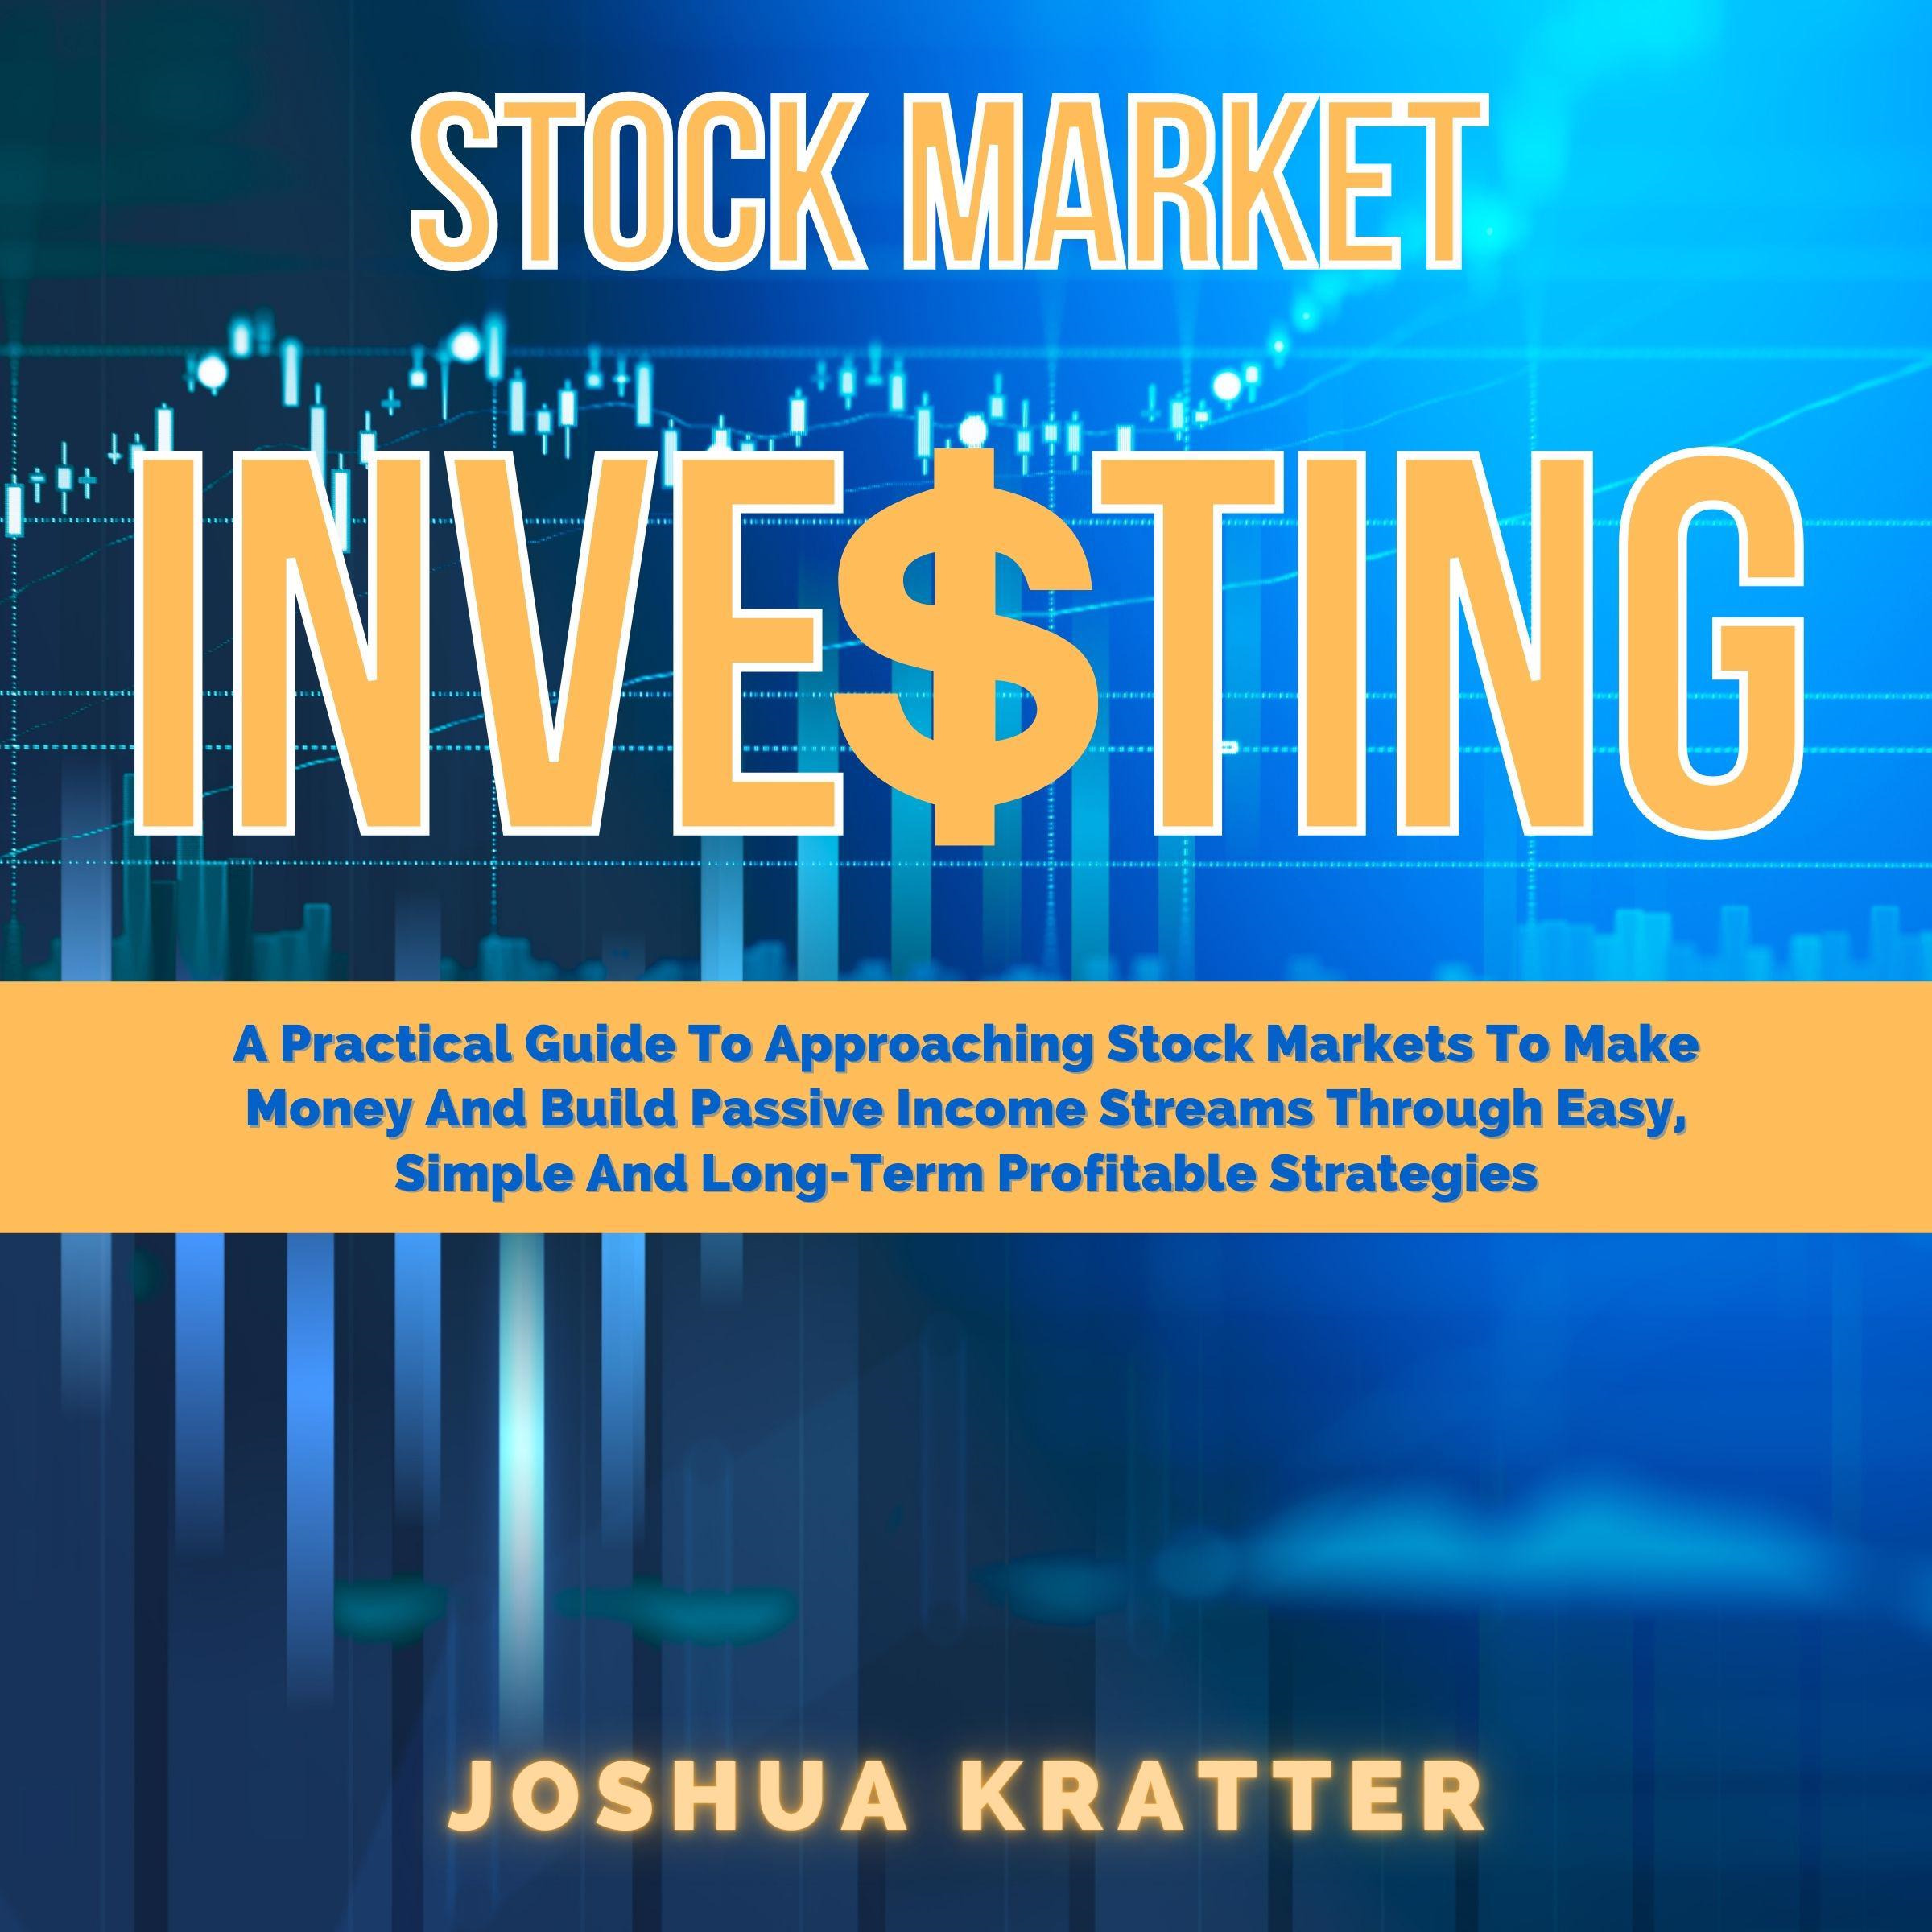 Stock Market Investing: A Practical Guide To Approaching Stock Markets To Make Money And Build Passive Income Streams Through Easy, Simple And Long-Term Profitable Strategies